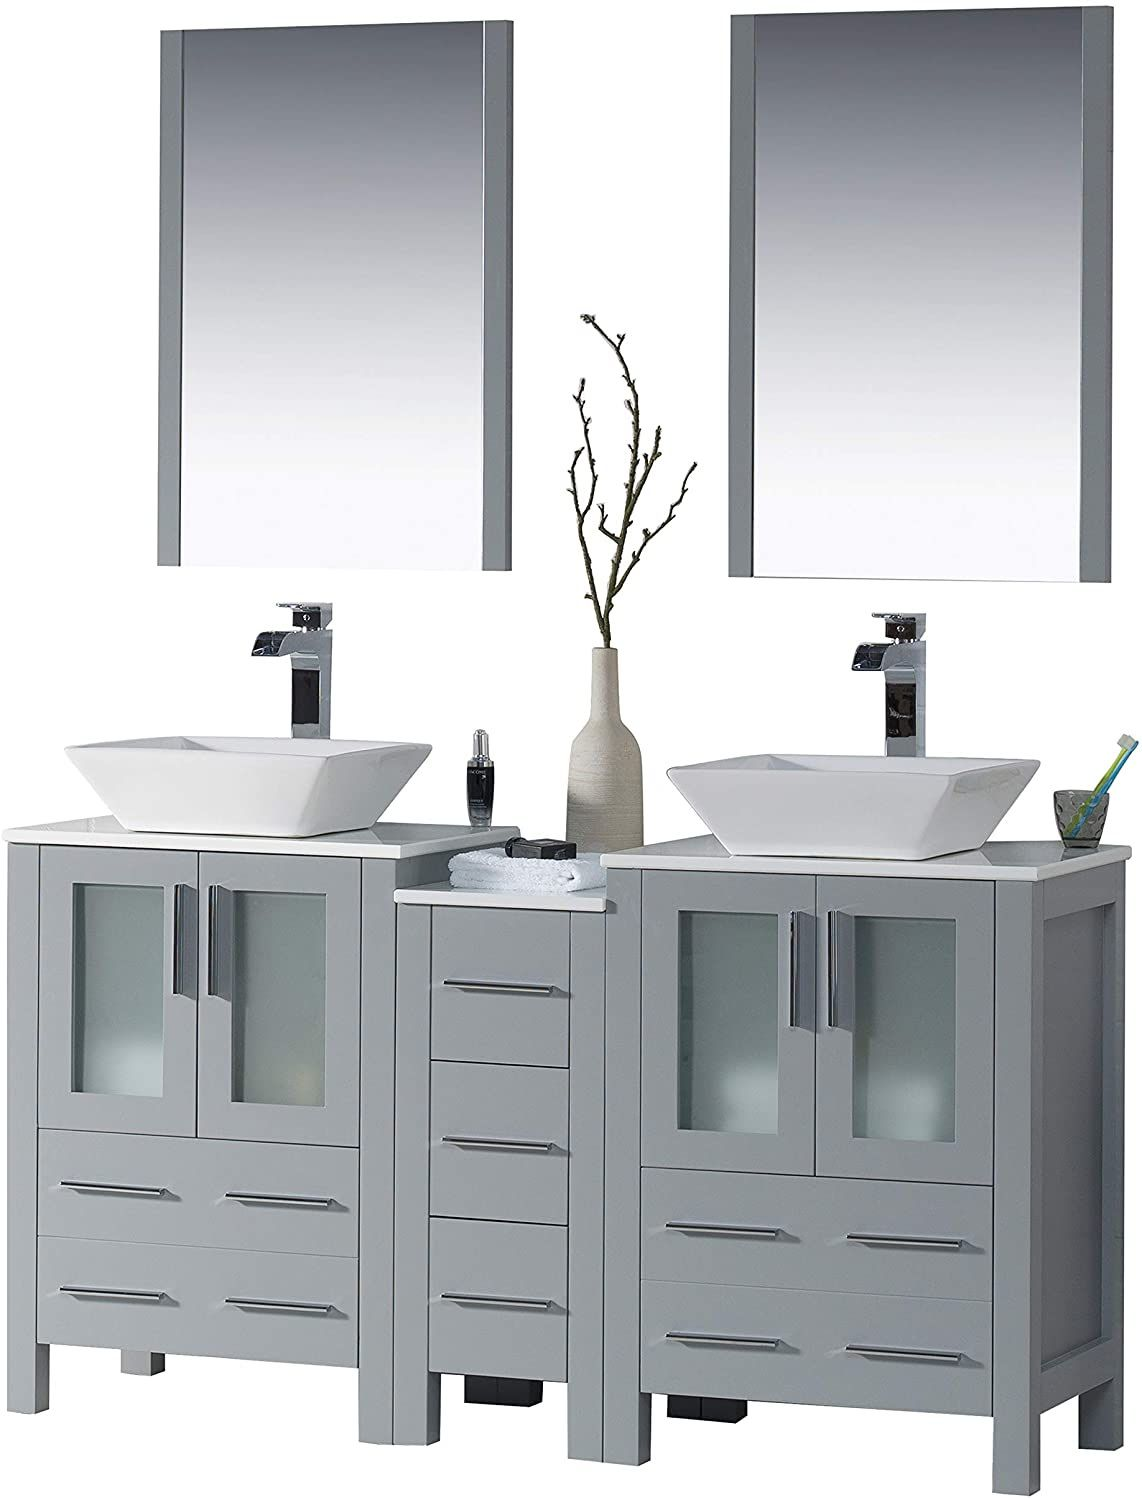 Bathroom Vanity With Two Side Cabinets 2021 Bathroom Vanity Vanity Modern Bathroom Vanity [ jpg ]